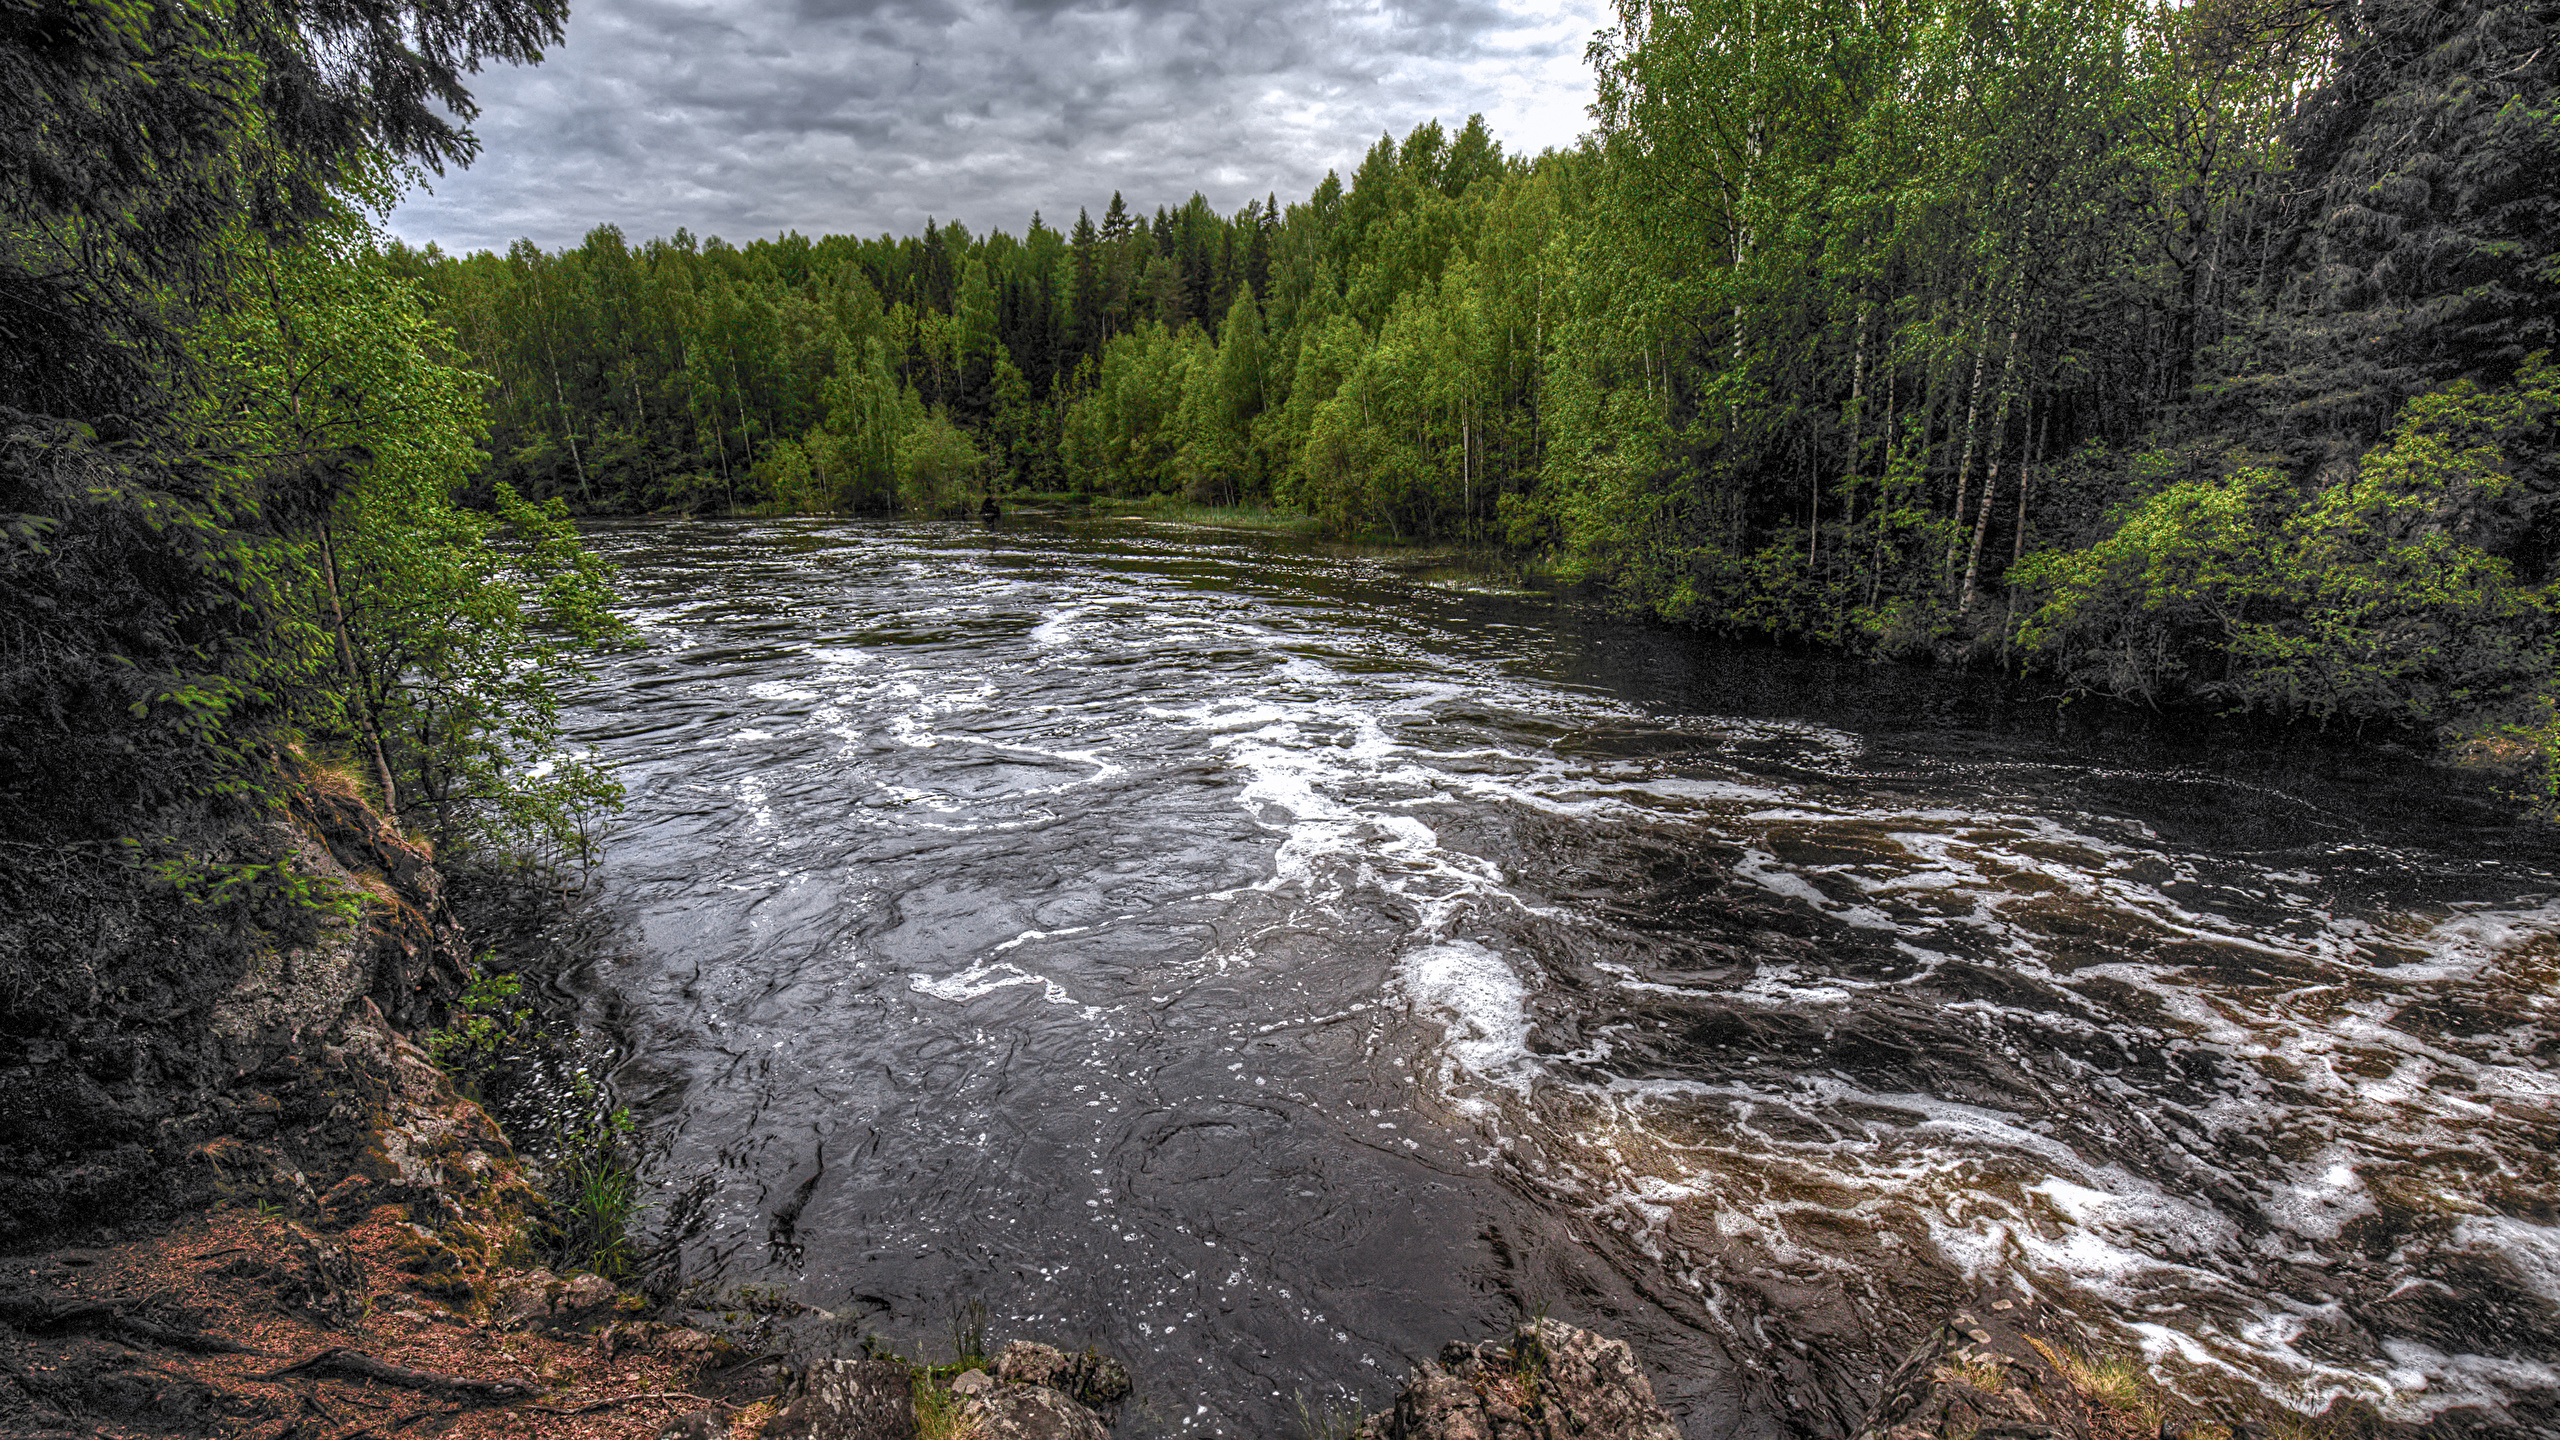 Картинки Россия Suna River Republic of Karelia Природа Леса Реки 2560x1440 речка